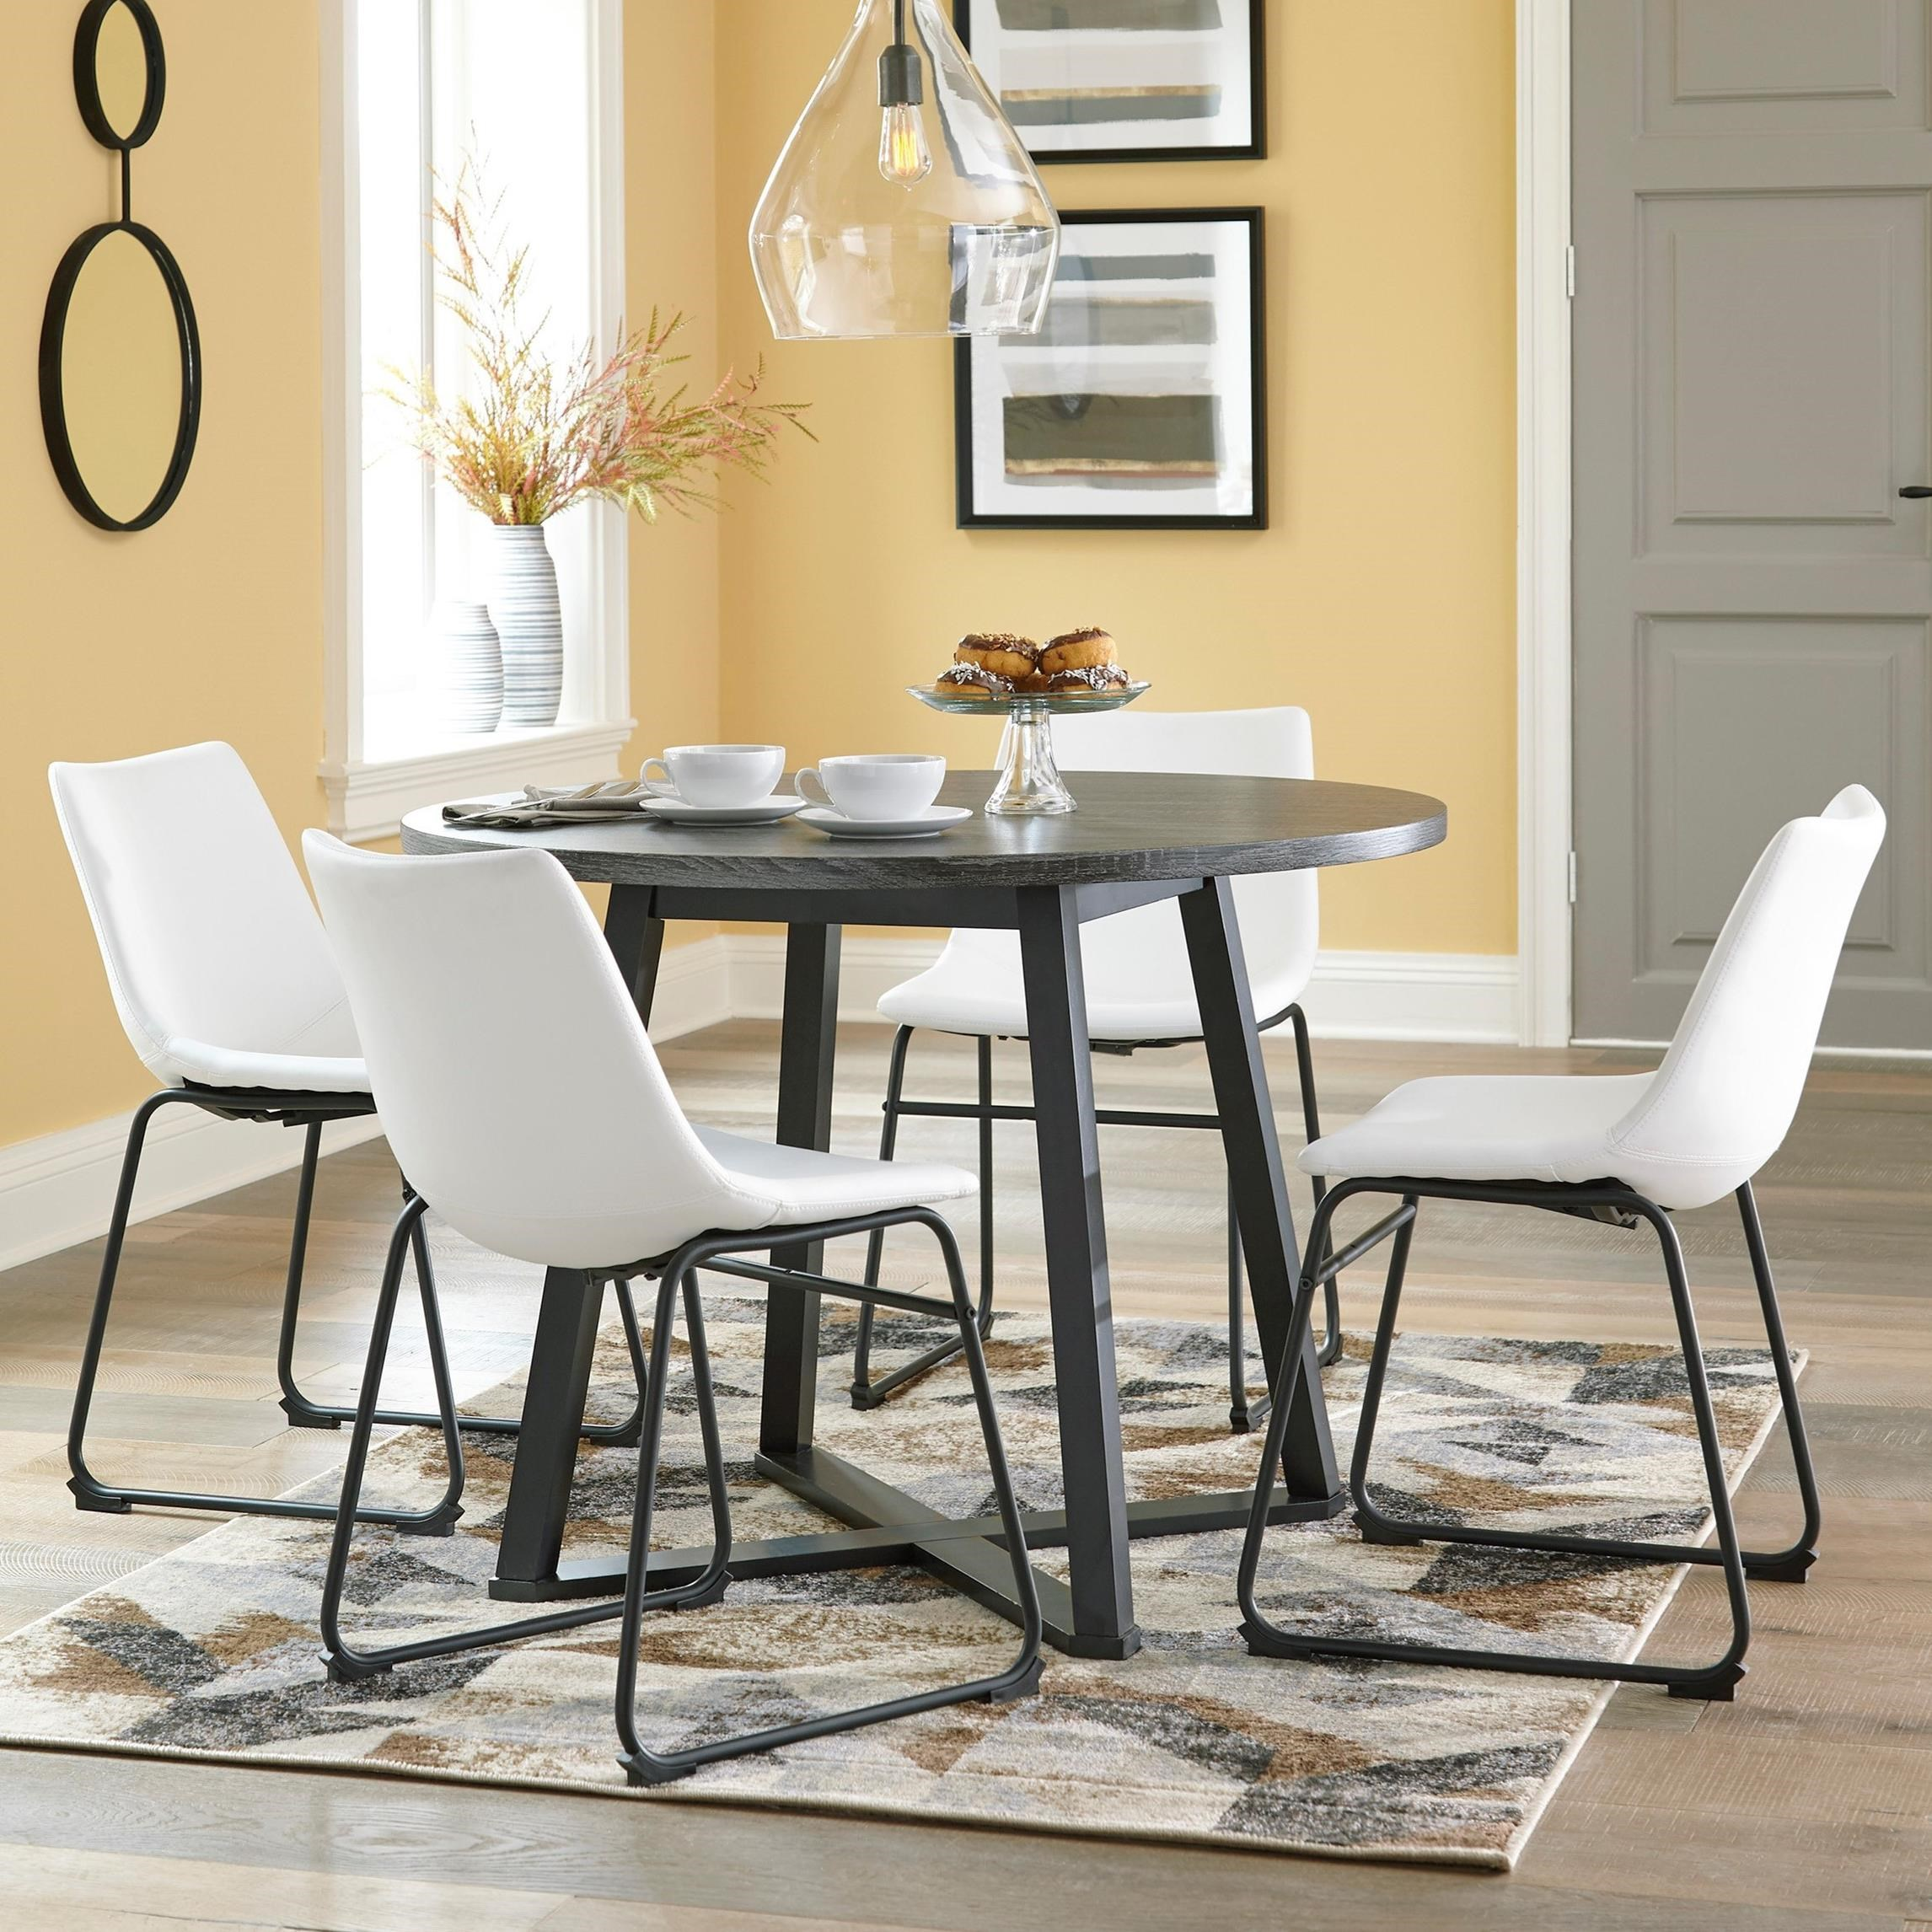 Centiar 5-Piece Round Dining Table Set by Signature Design by Ashley at Zak's Warehouse Clearance Center